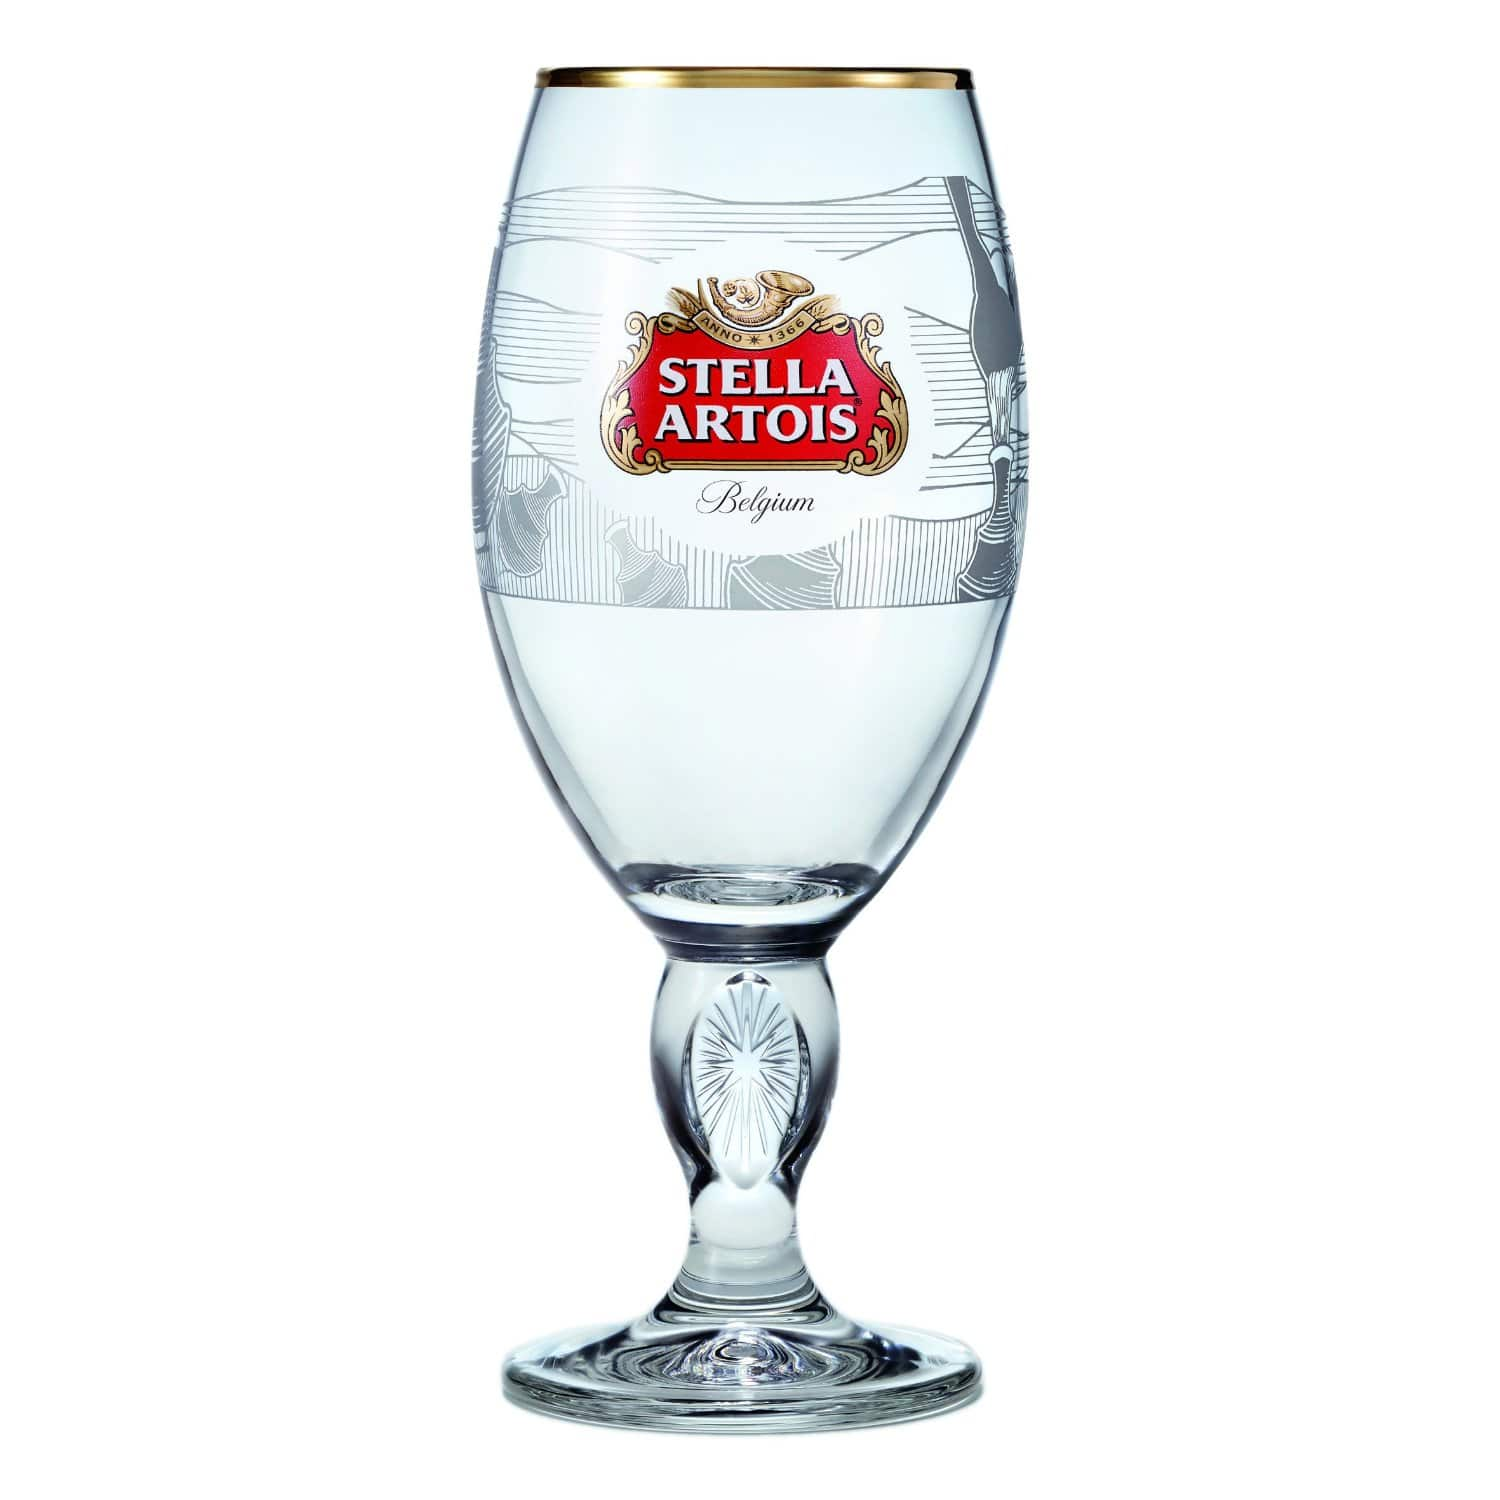 11.2oz Stella Artois Limited Edition Engraved Chalice (various styles)  $13